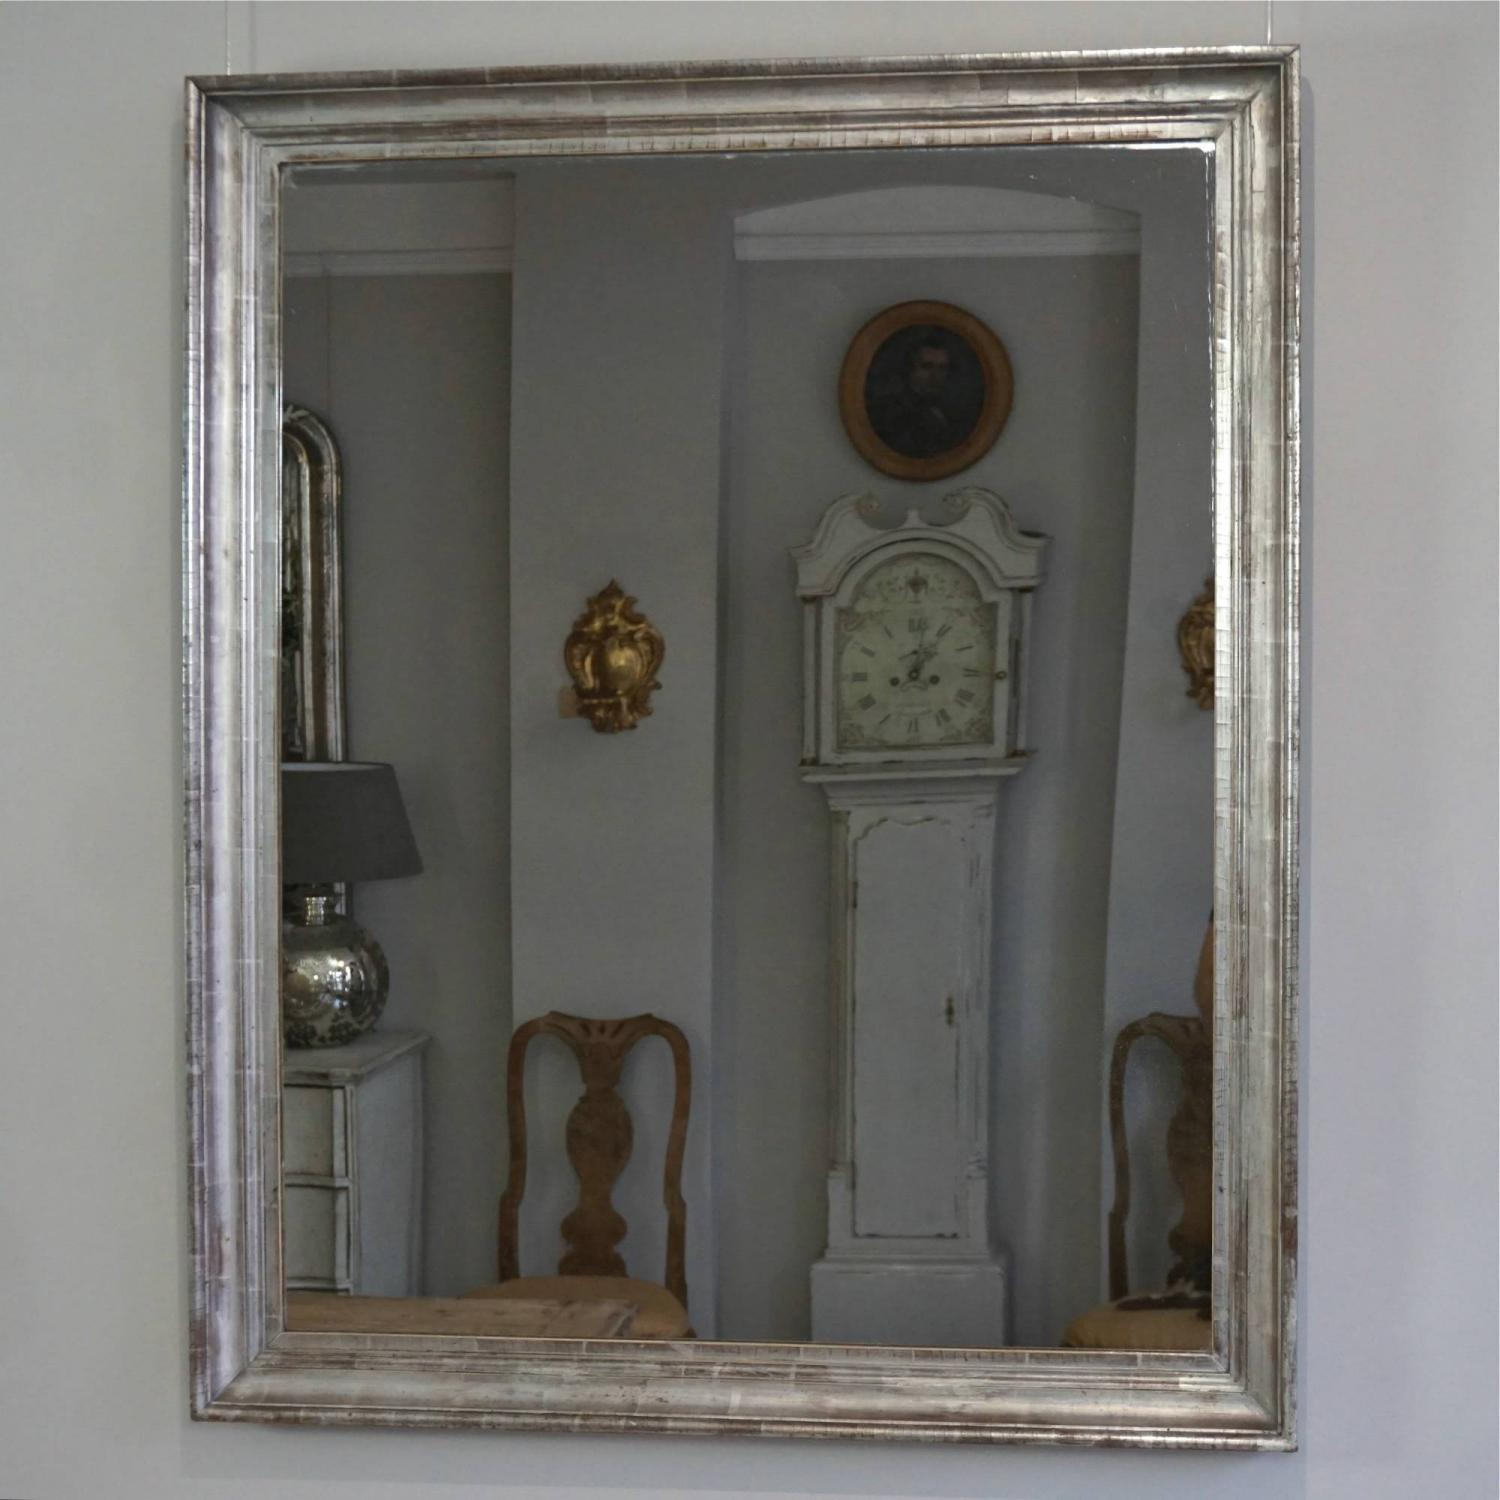 BEAUTIFUL 19TH CENTURY SILVER GILT FRAMED MIRROR